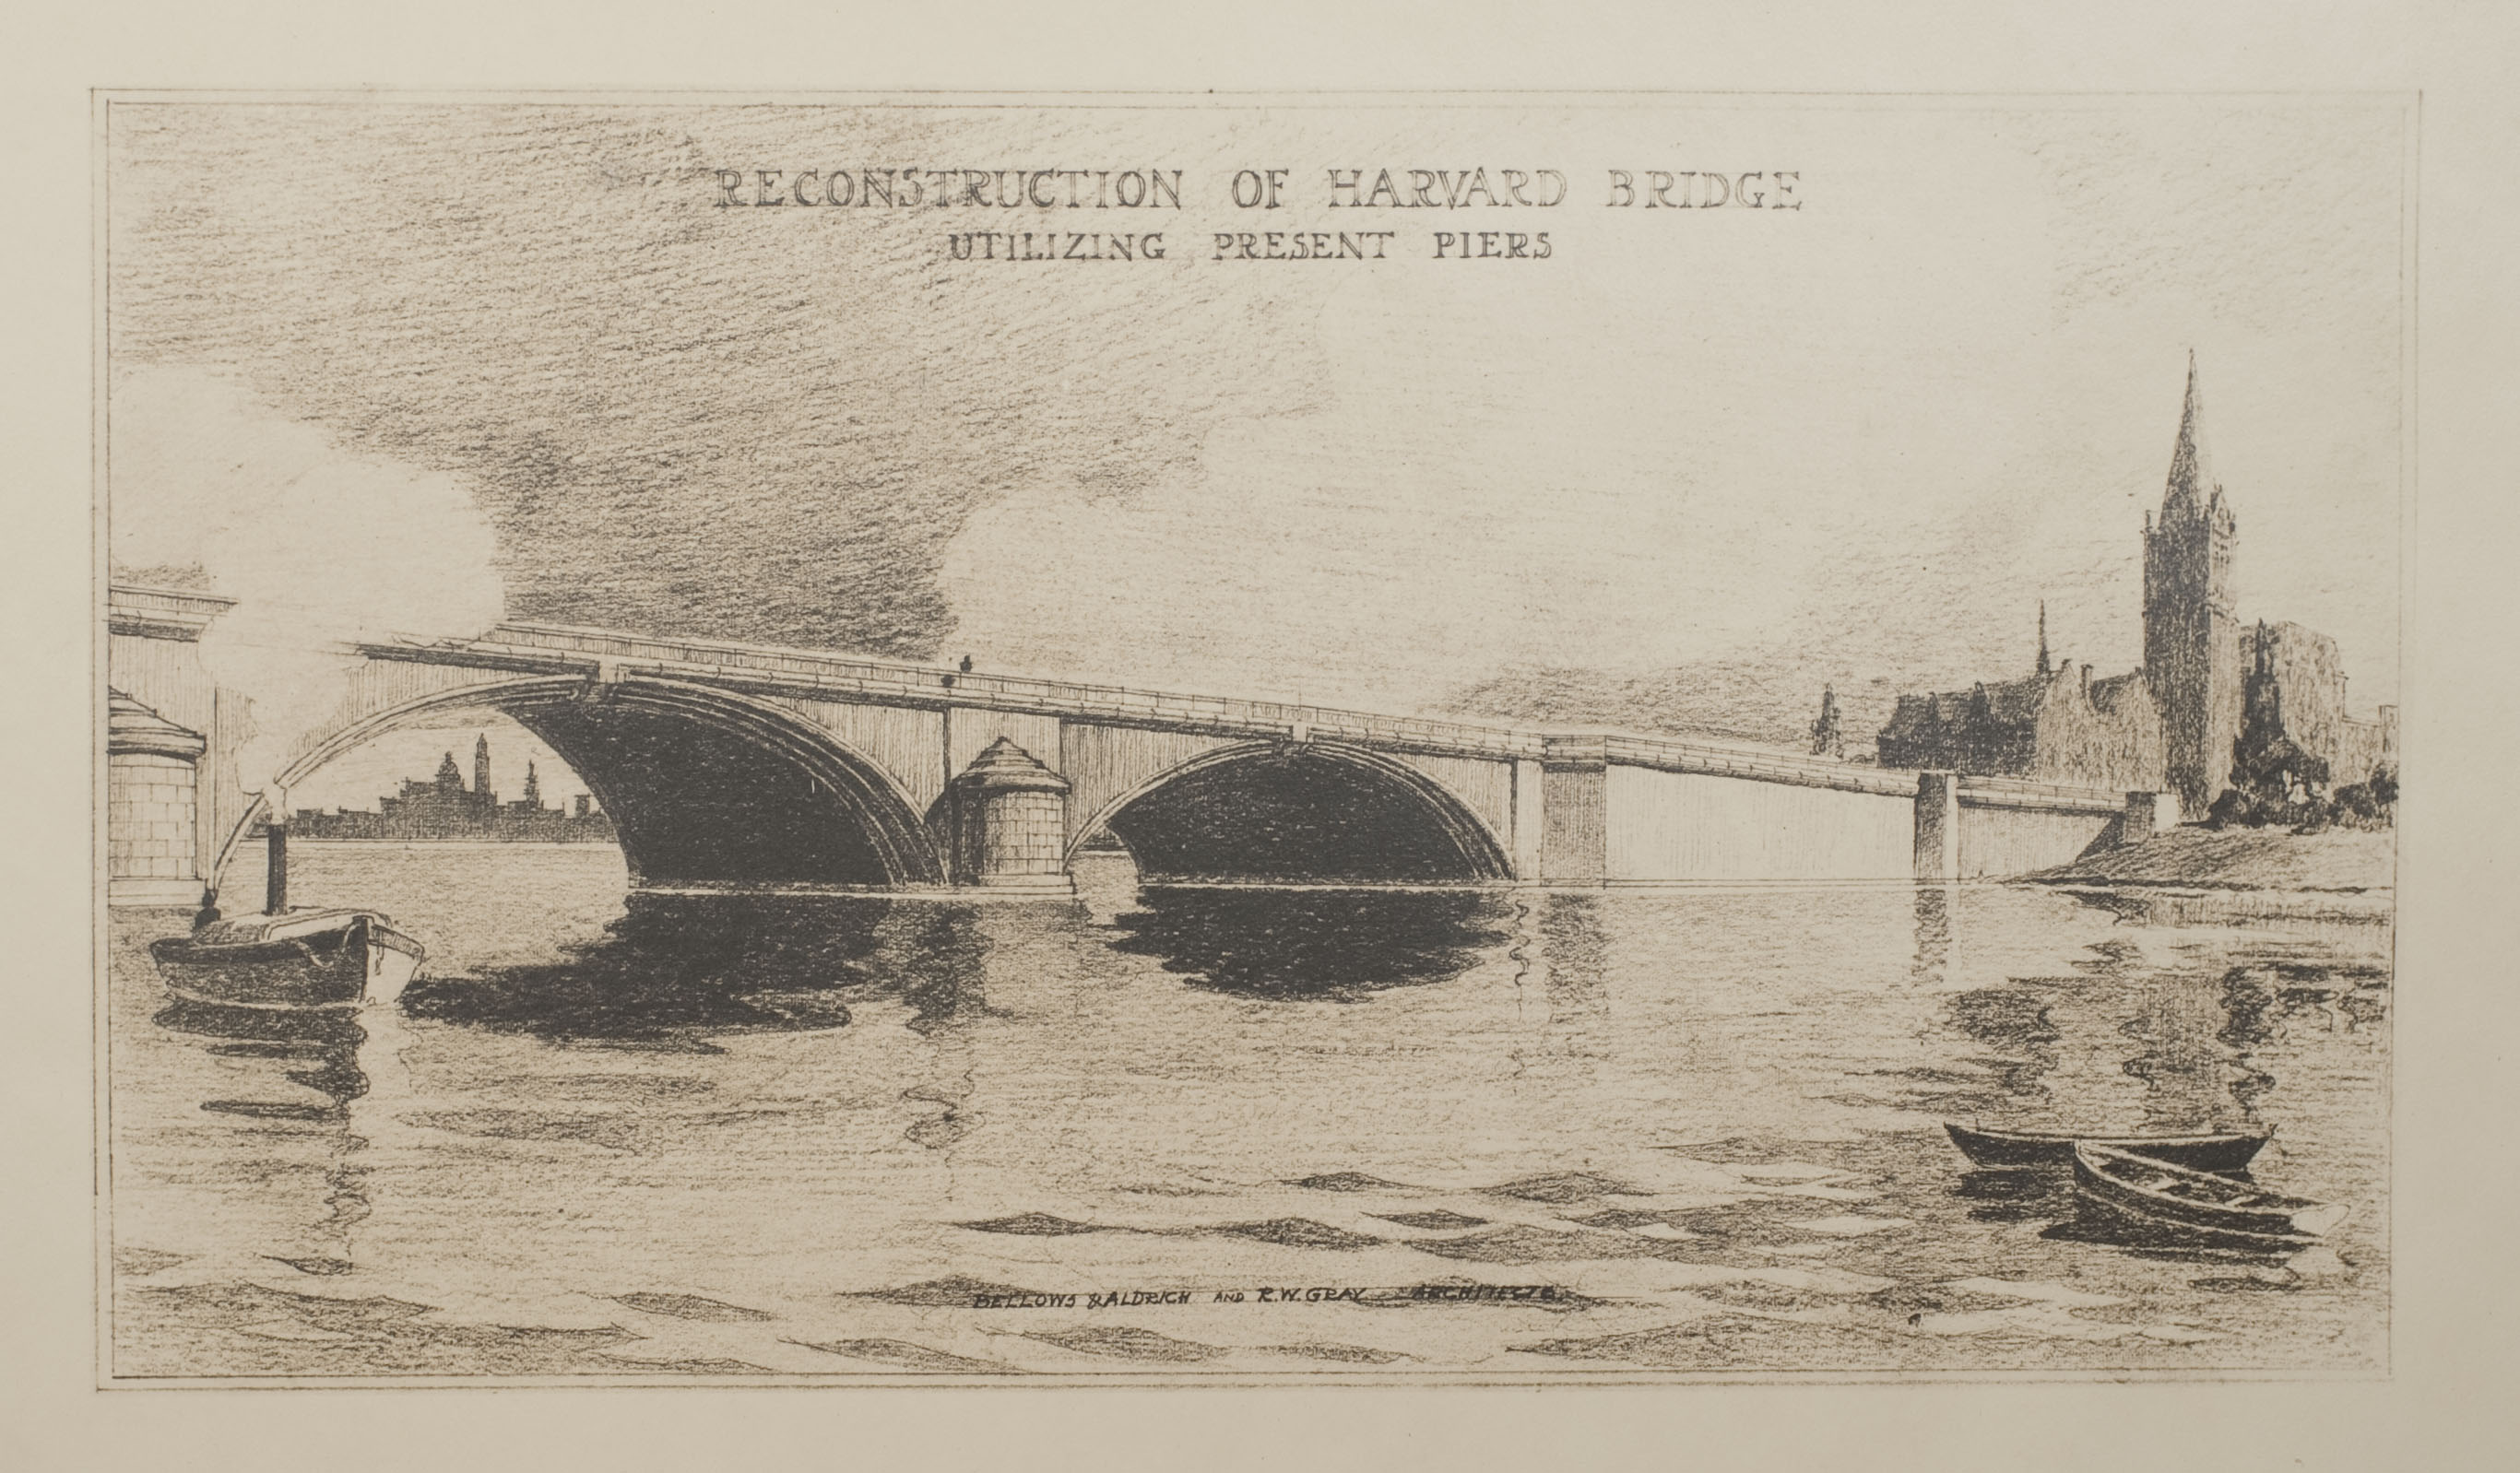 Reconstruction of Harvard Bridge